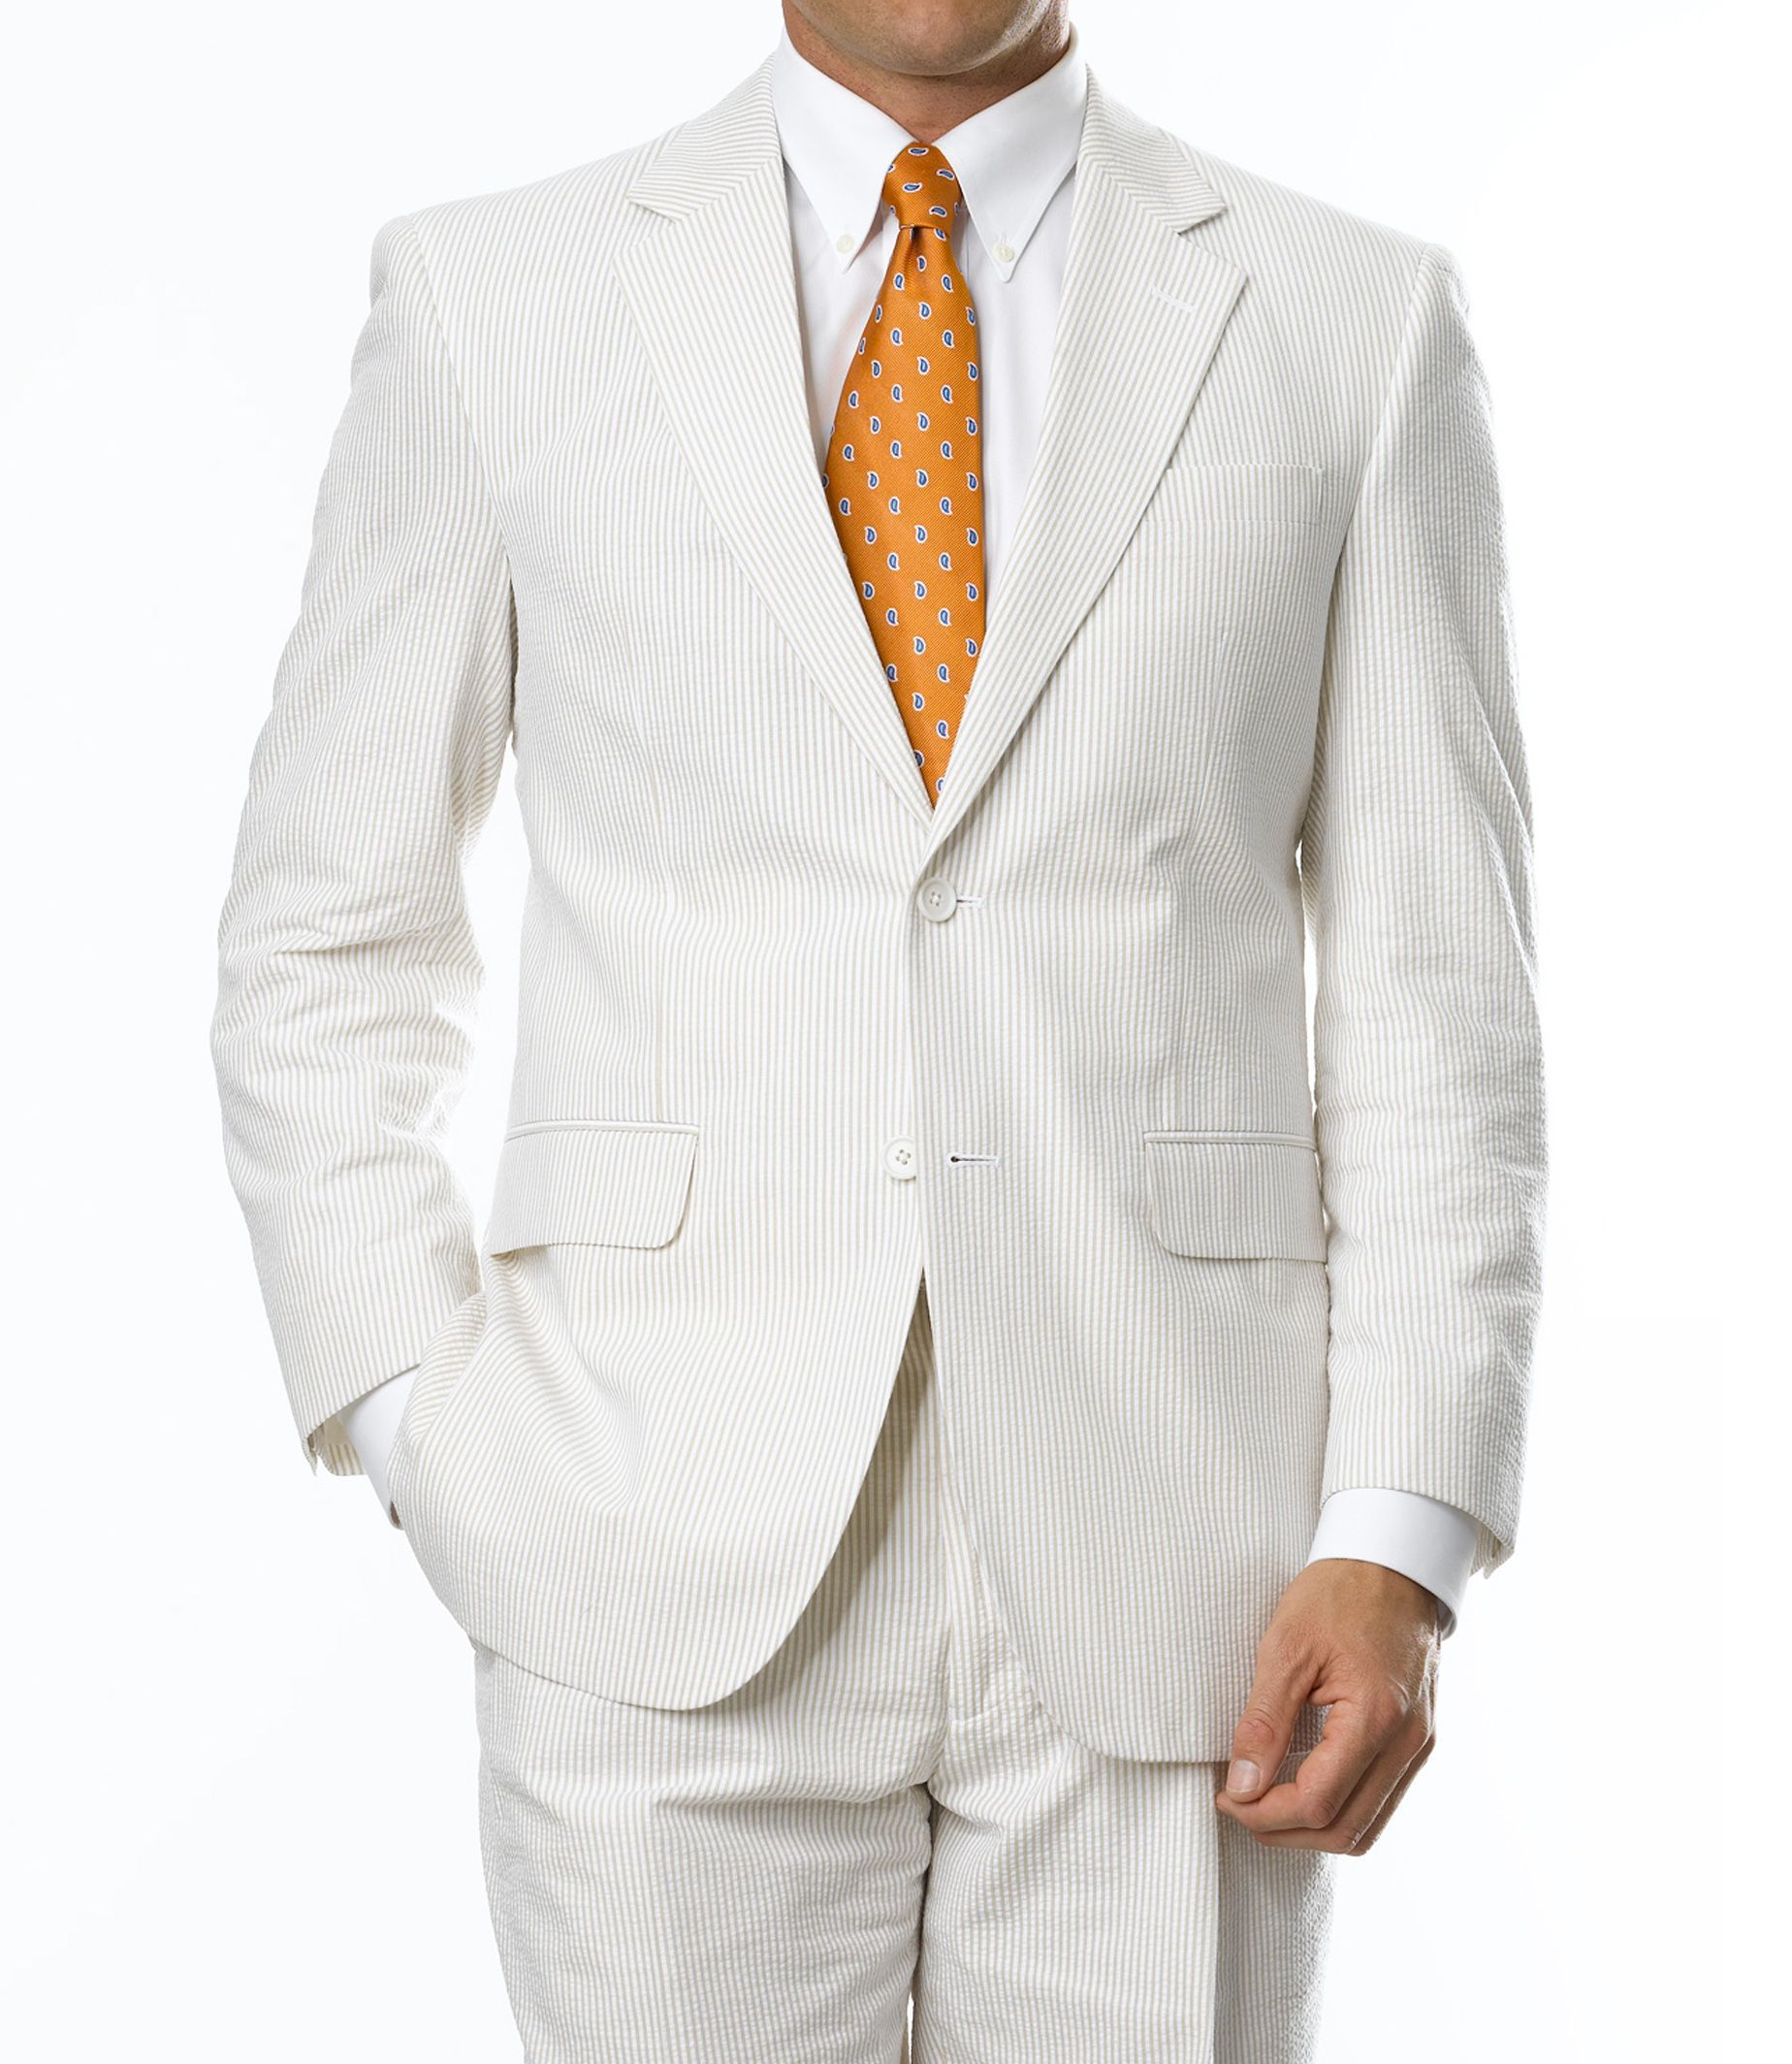 Men's Big & Tall Executive Collection Suits | JoS. A. Bank